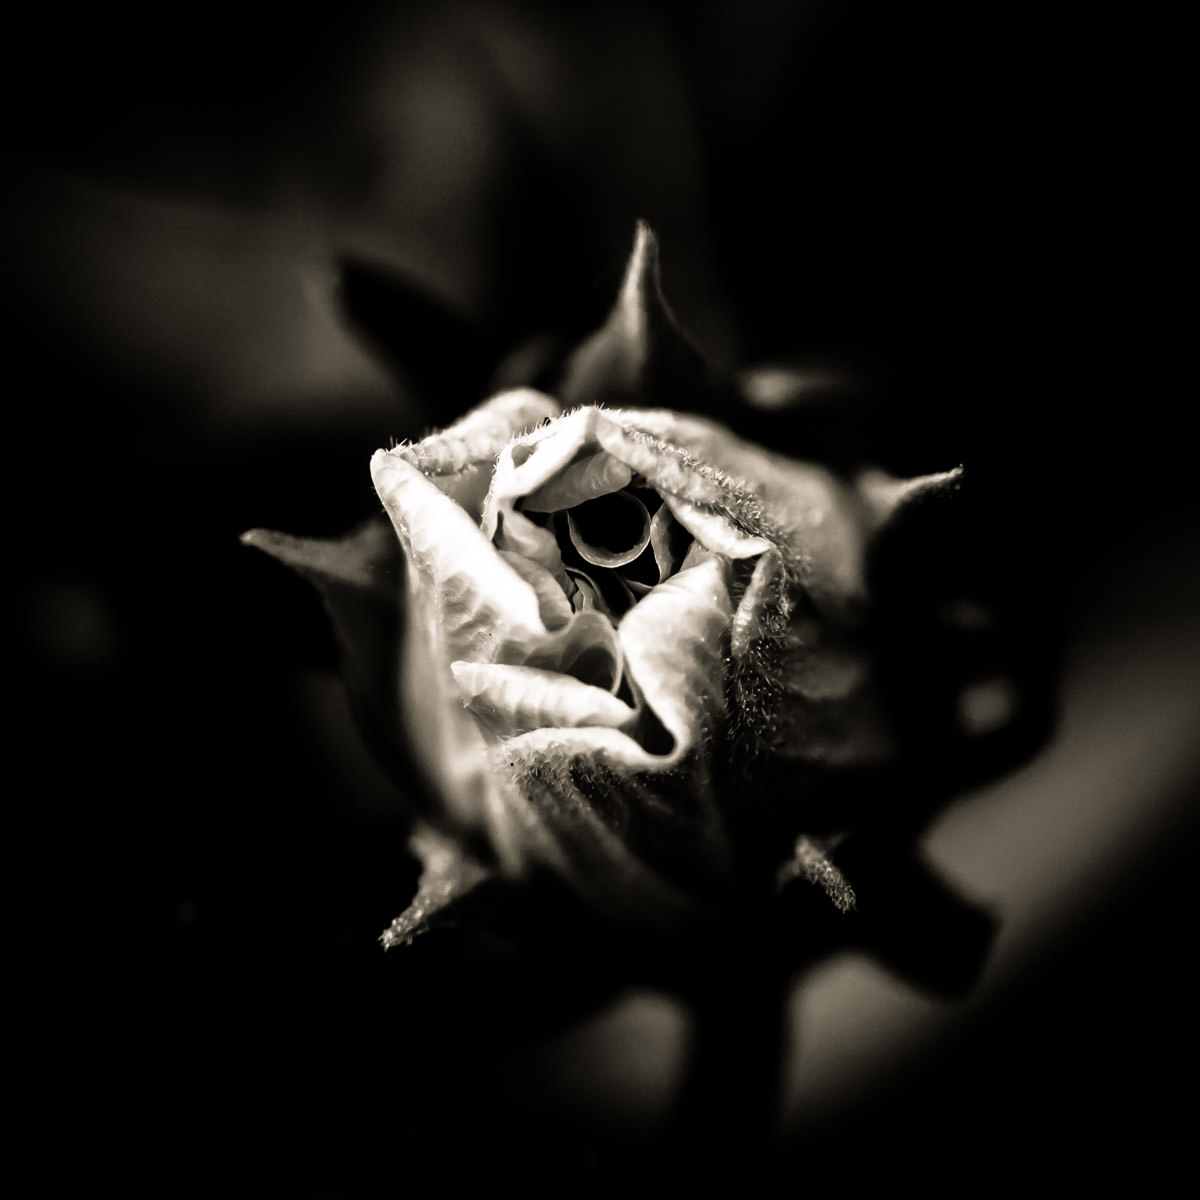 Detail of a rose blossom, caught just as it begins to bloom.